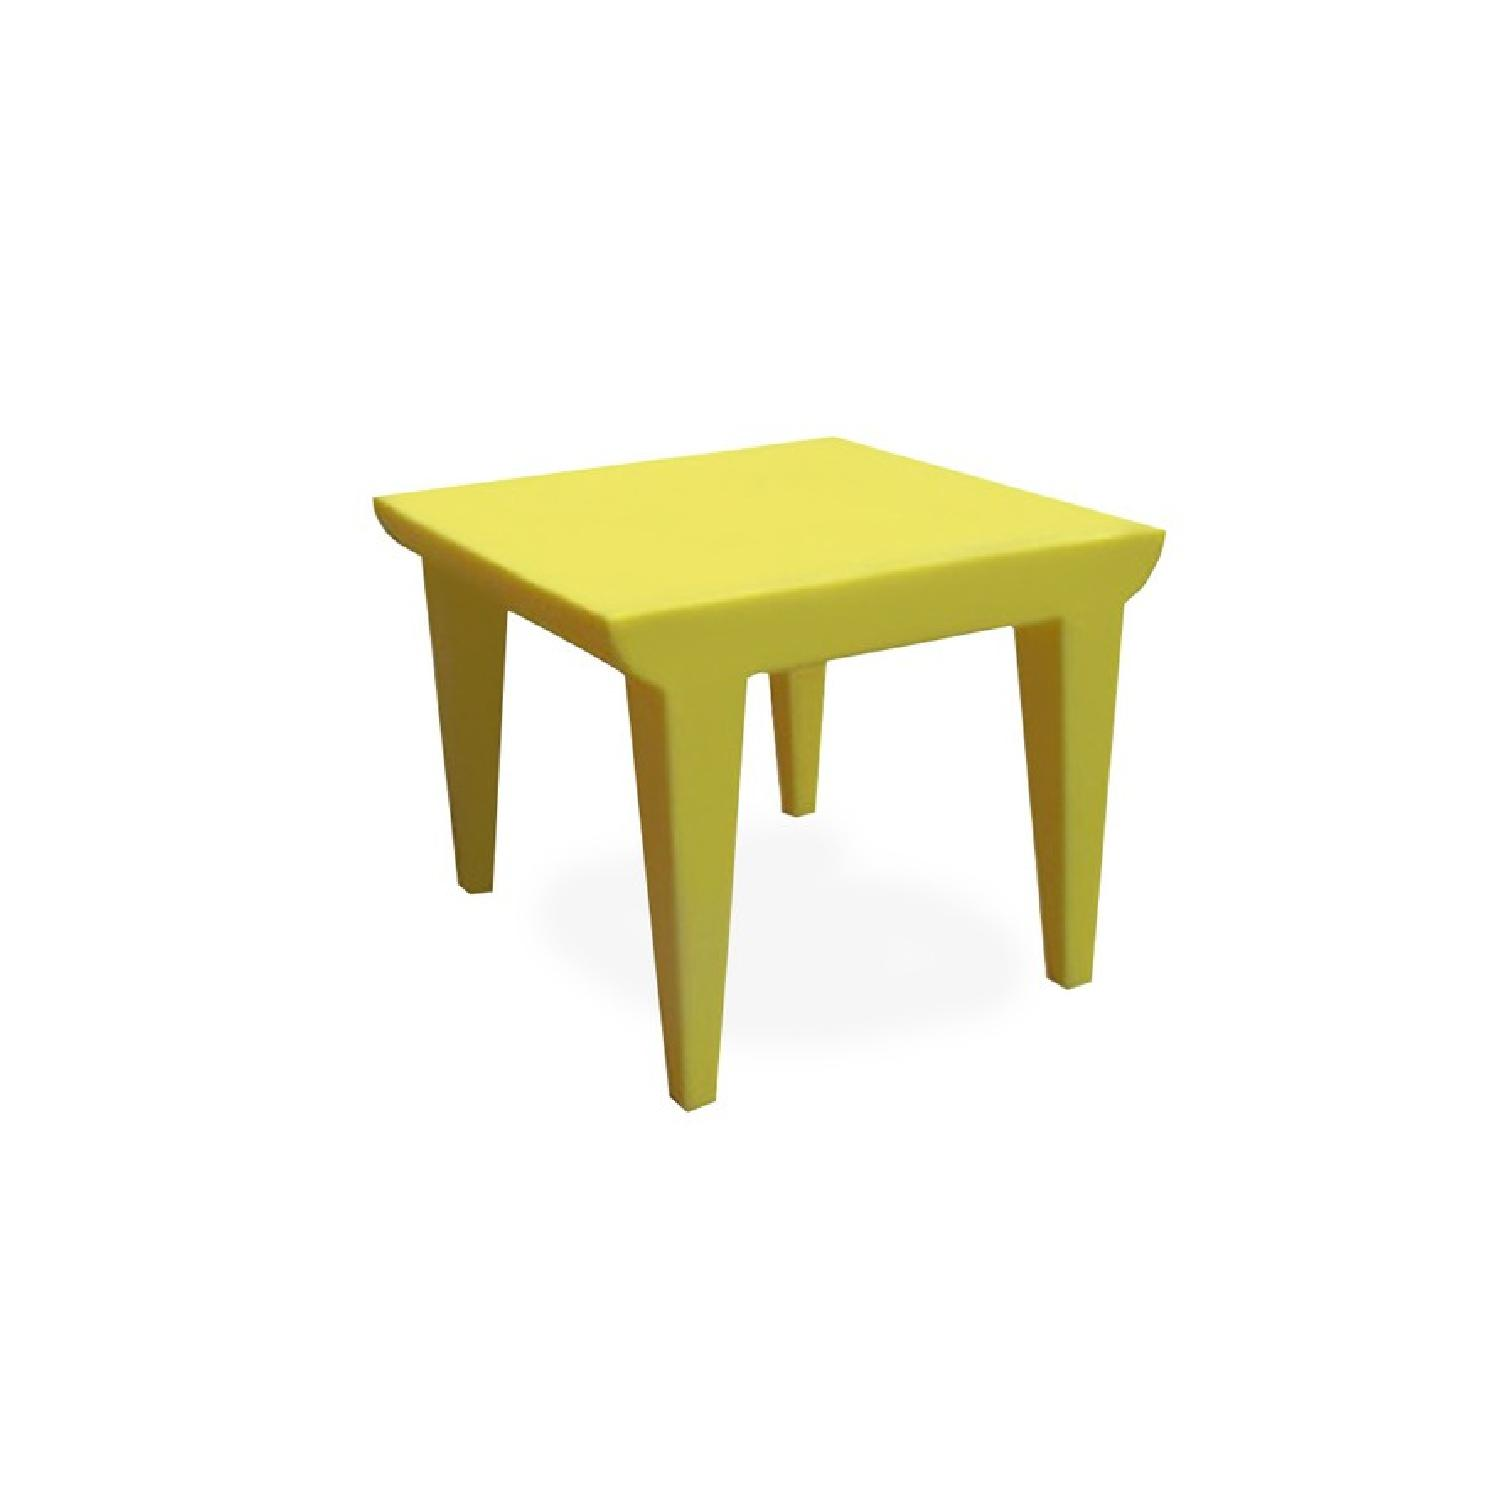 Kartell Philippe Stark Bubble Club Side Tables in Yellow - image-3